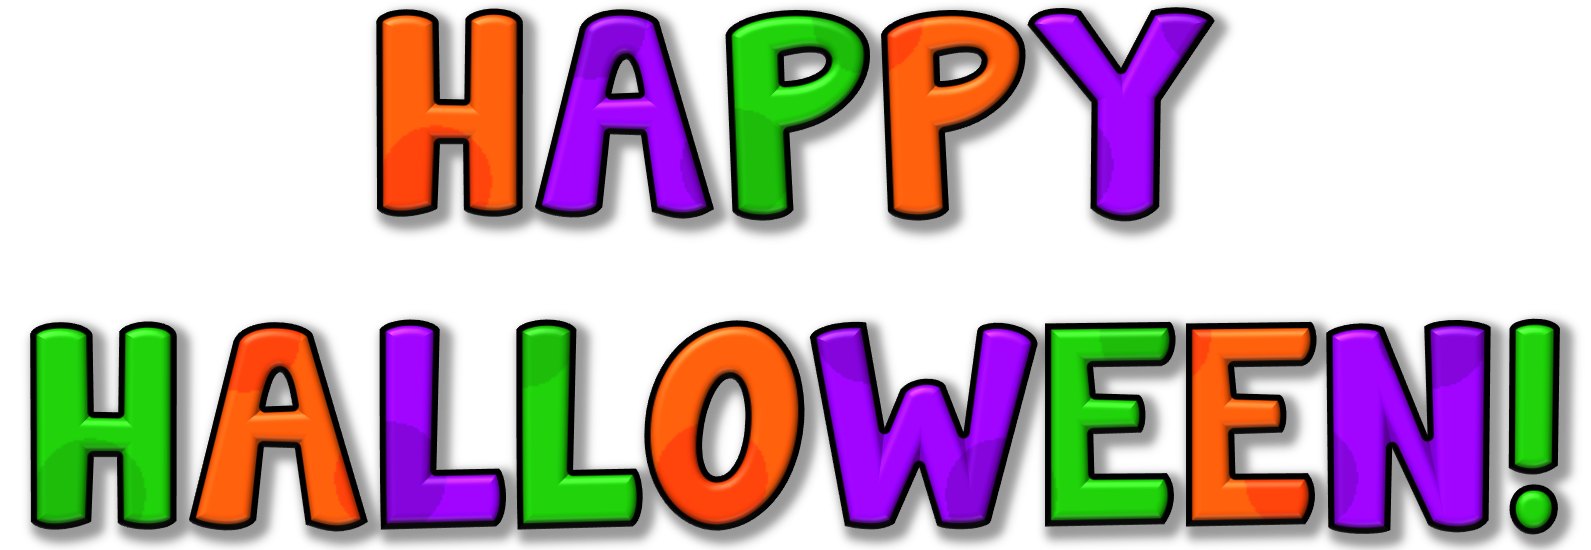 Free happy halloween clipart jpg free stock Free Happy Halloween Clipart at GetDrawings.com | Free for personal ... jpg free stock